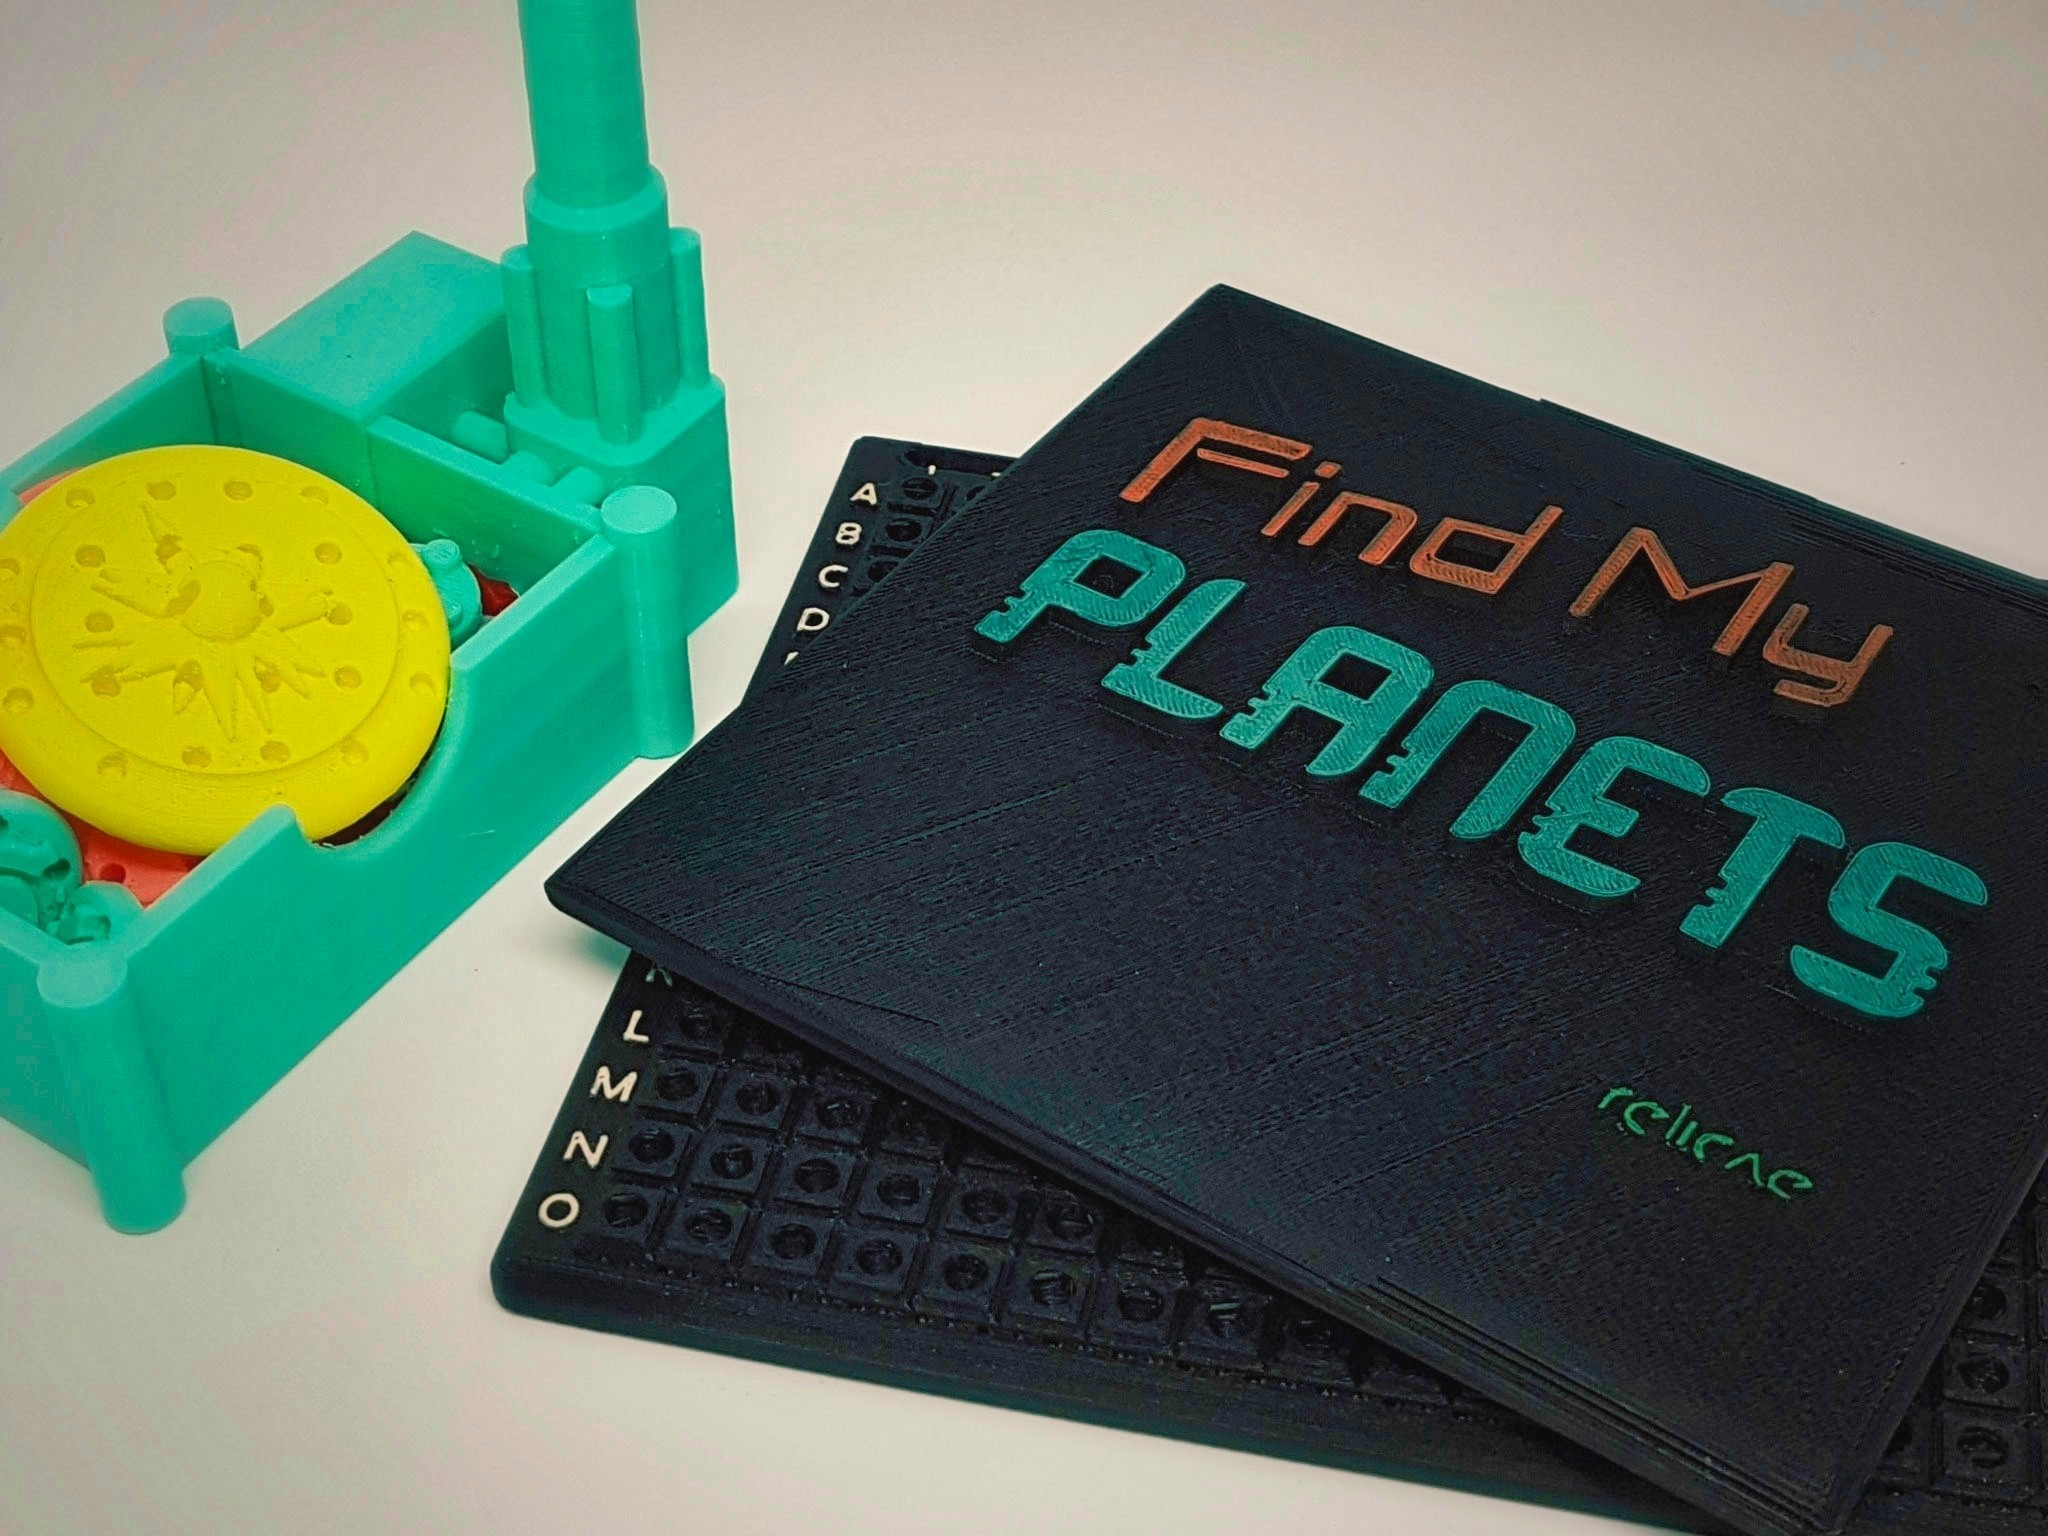 Find_My_Planets_9a_OK.jpg Download free STL file Find My Planets - Guessing Game (Battleship style) • 3D printer object, Relicae